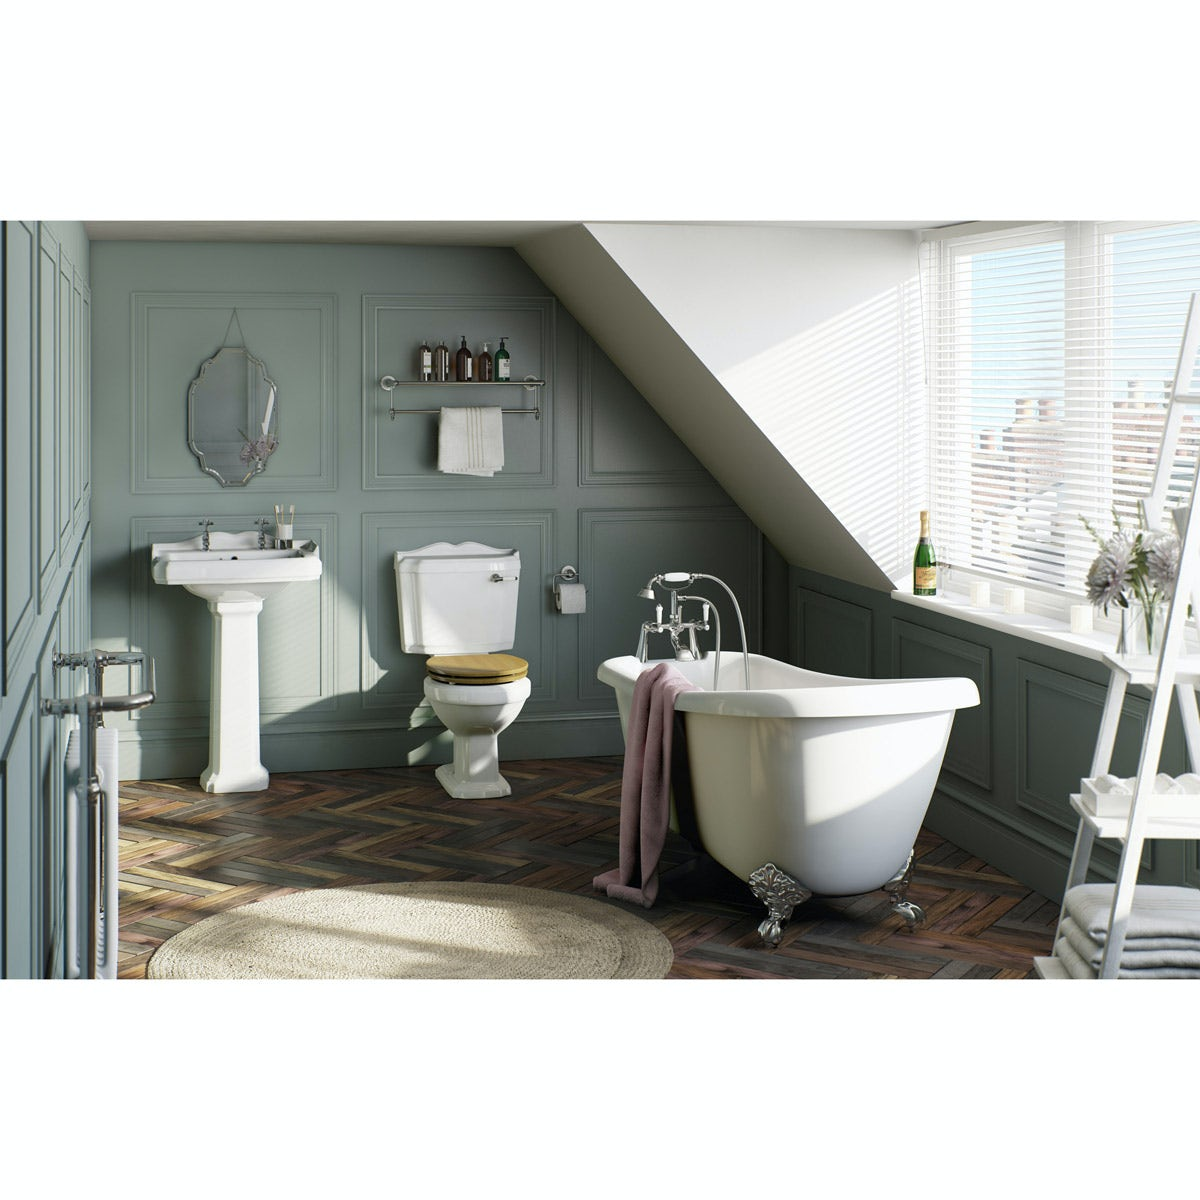 The Bath Co. Winchester oak bathroom suite with roll top bath and taps